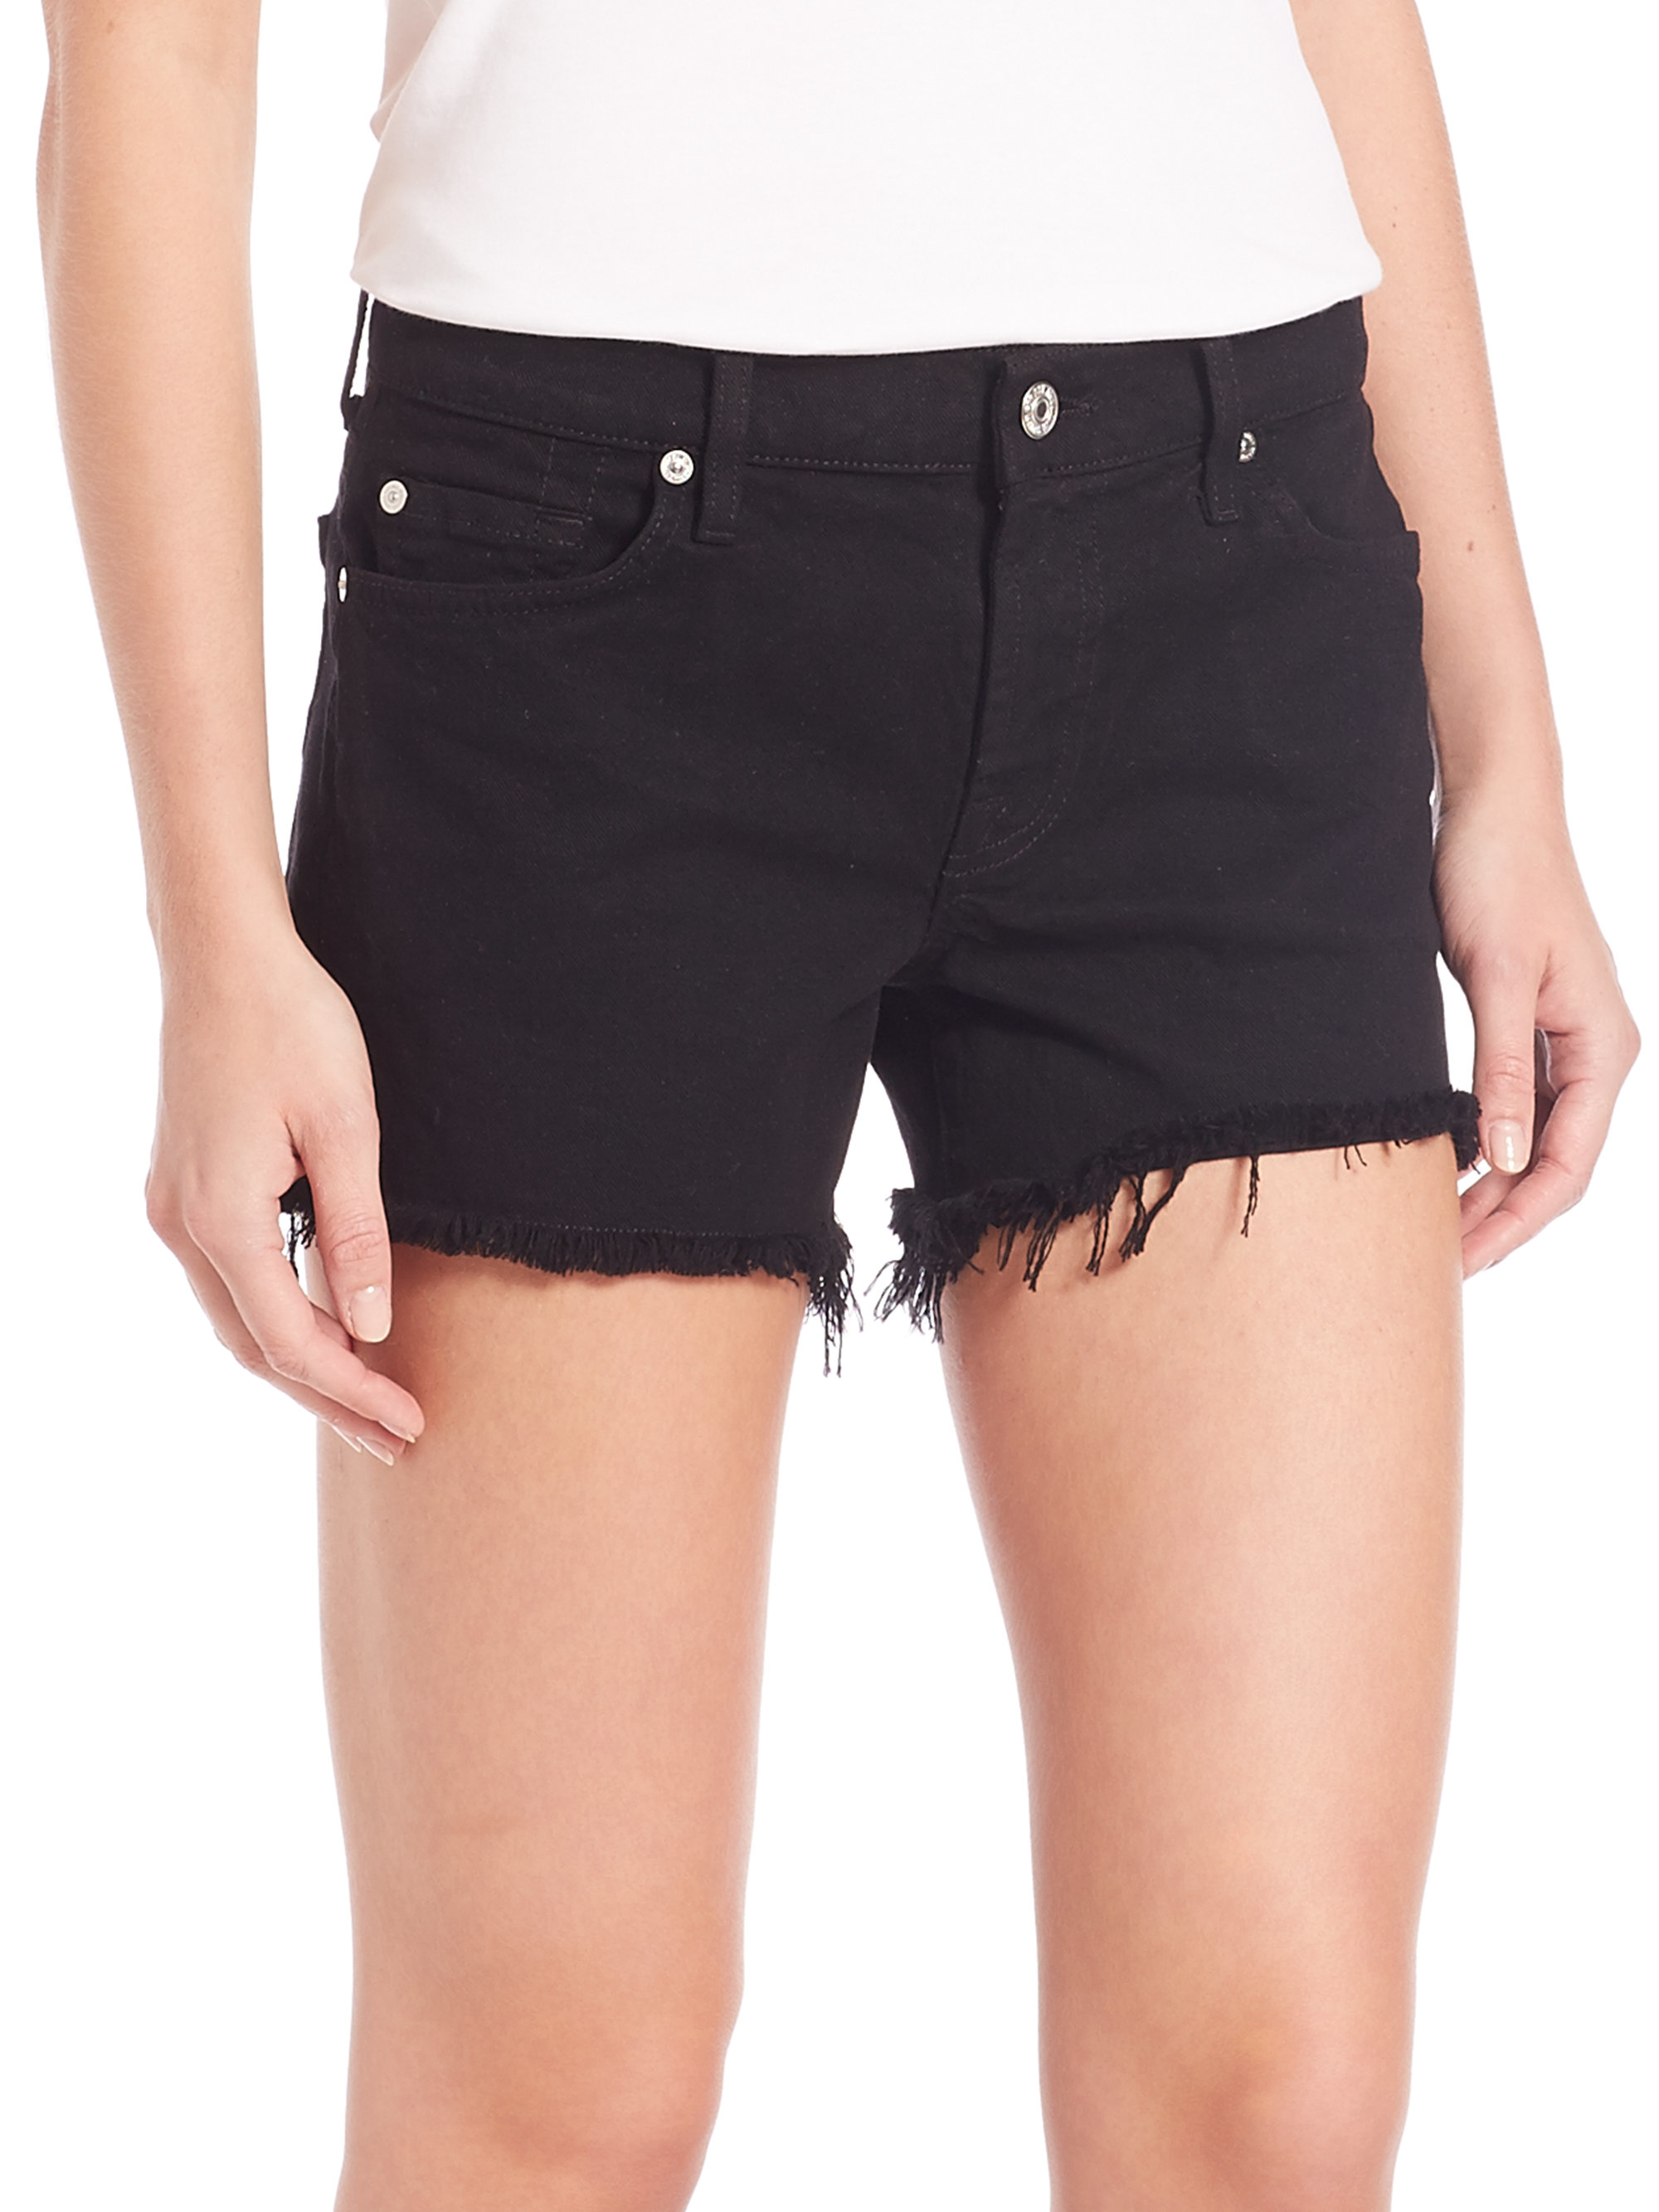 7 for all mankind Cut-off Denim Shorts in Black | Lyst